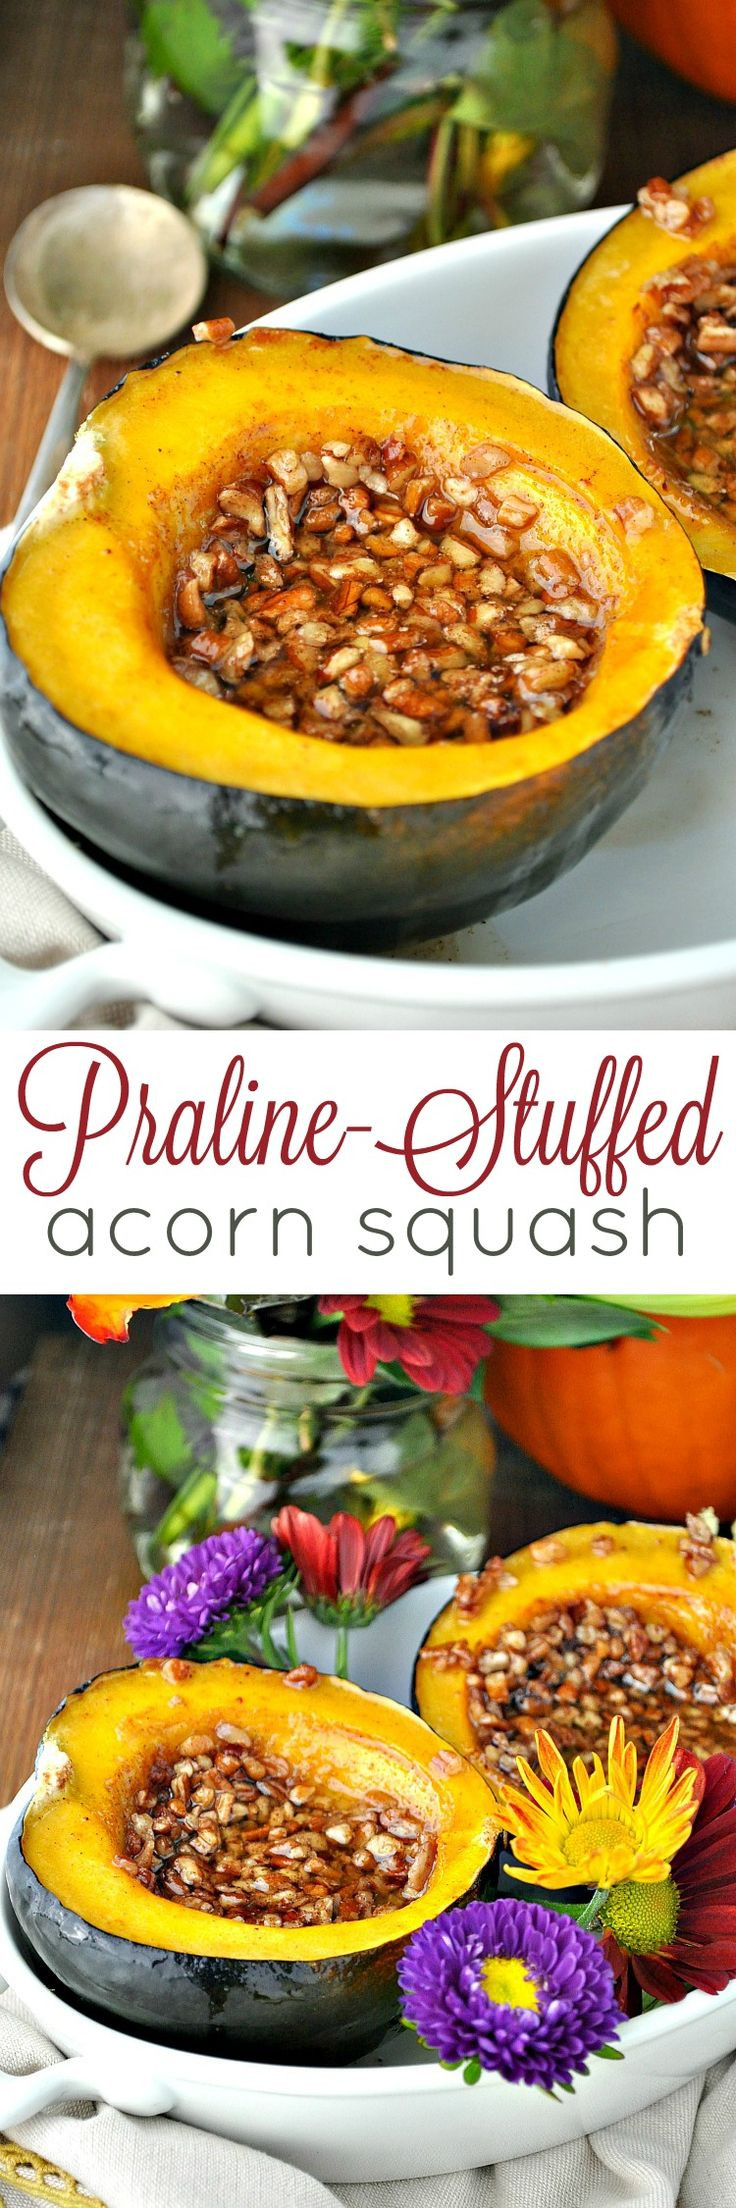 Thanksgiving Easy Side Dishes  Best 25 Easy thanksgiving side dishes ideas on Pinterest